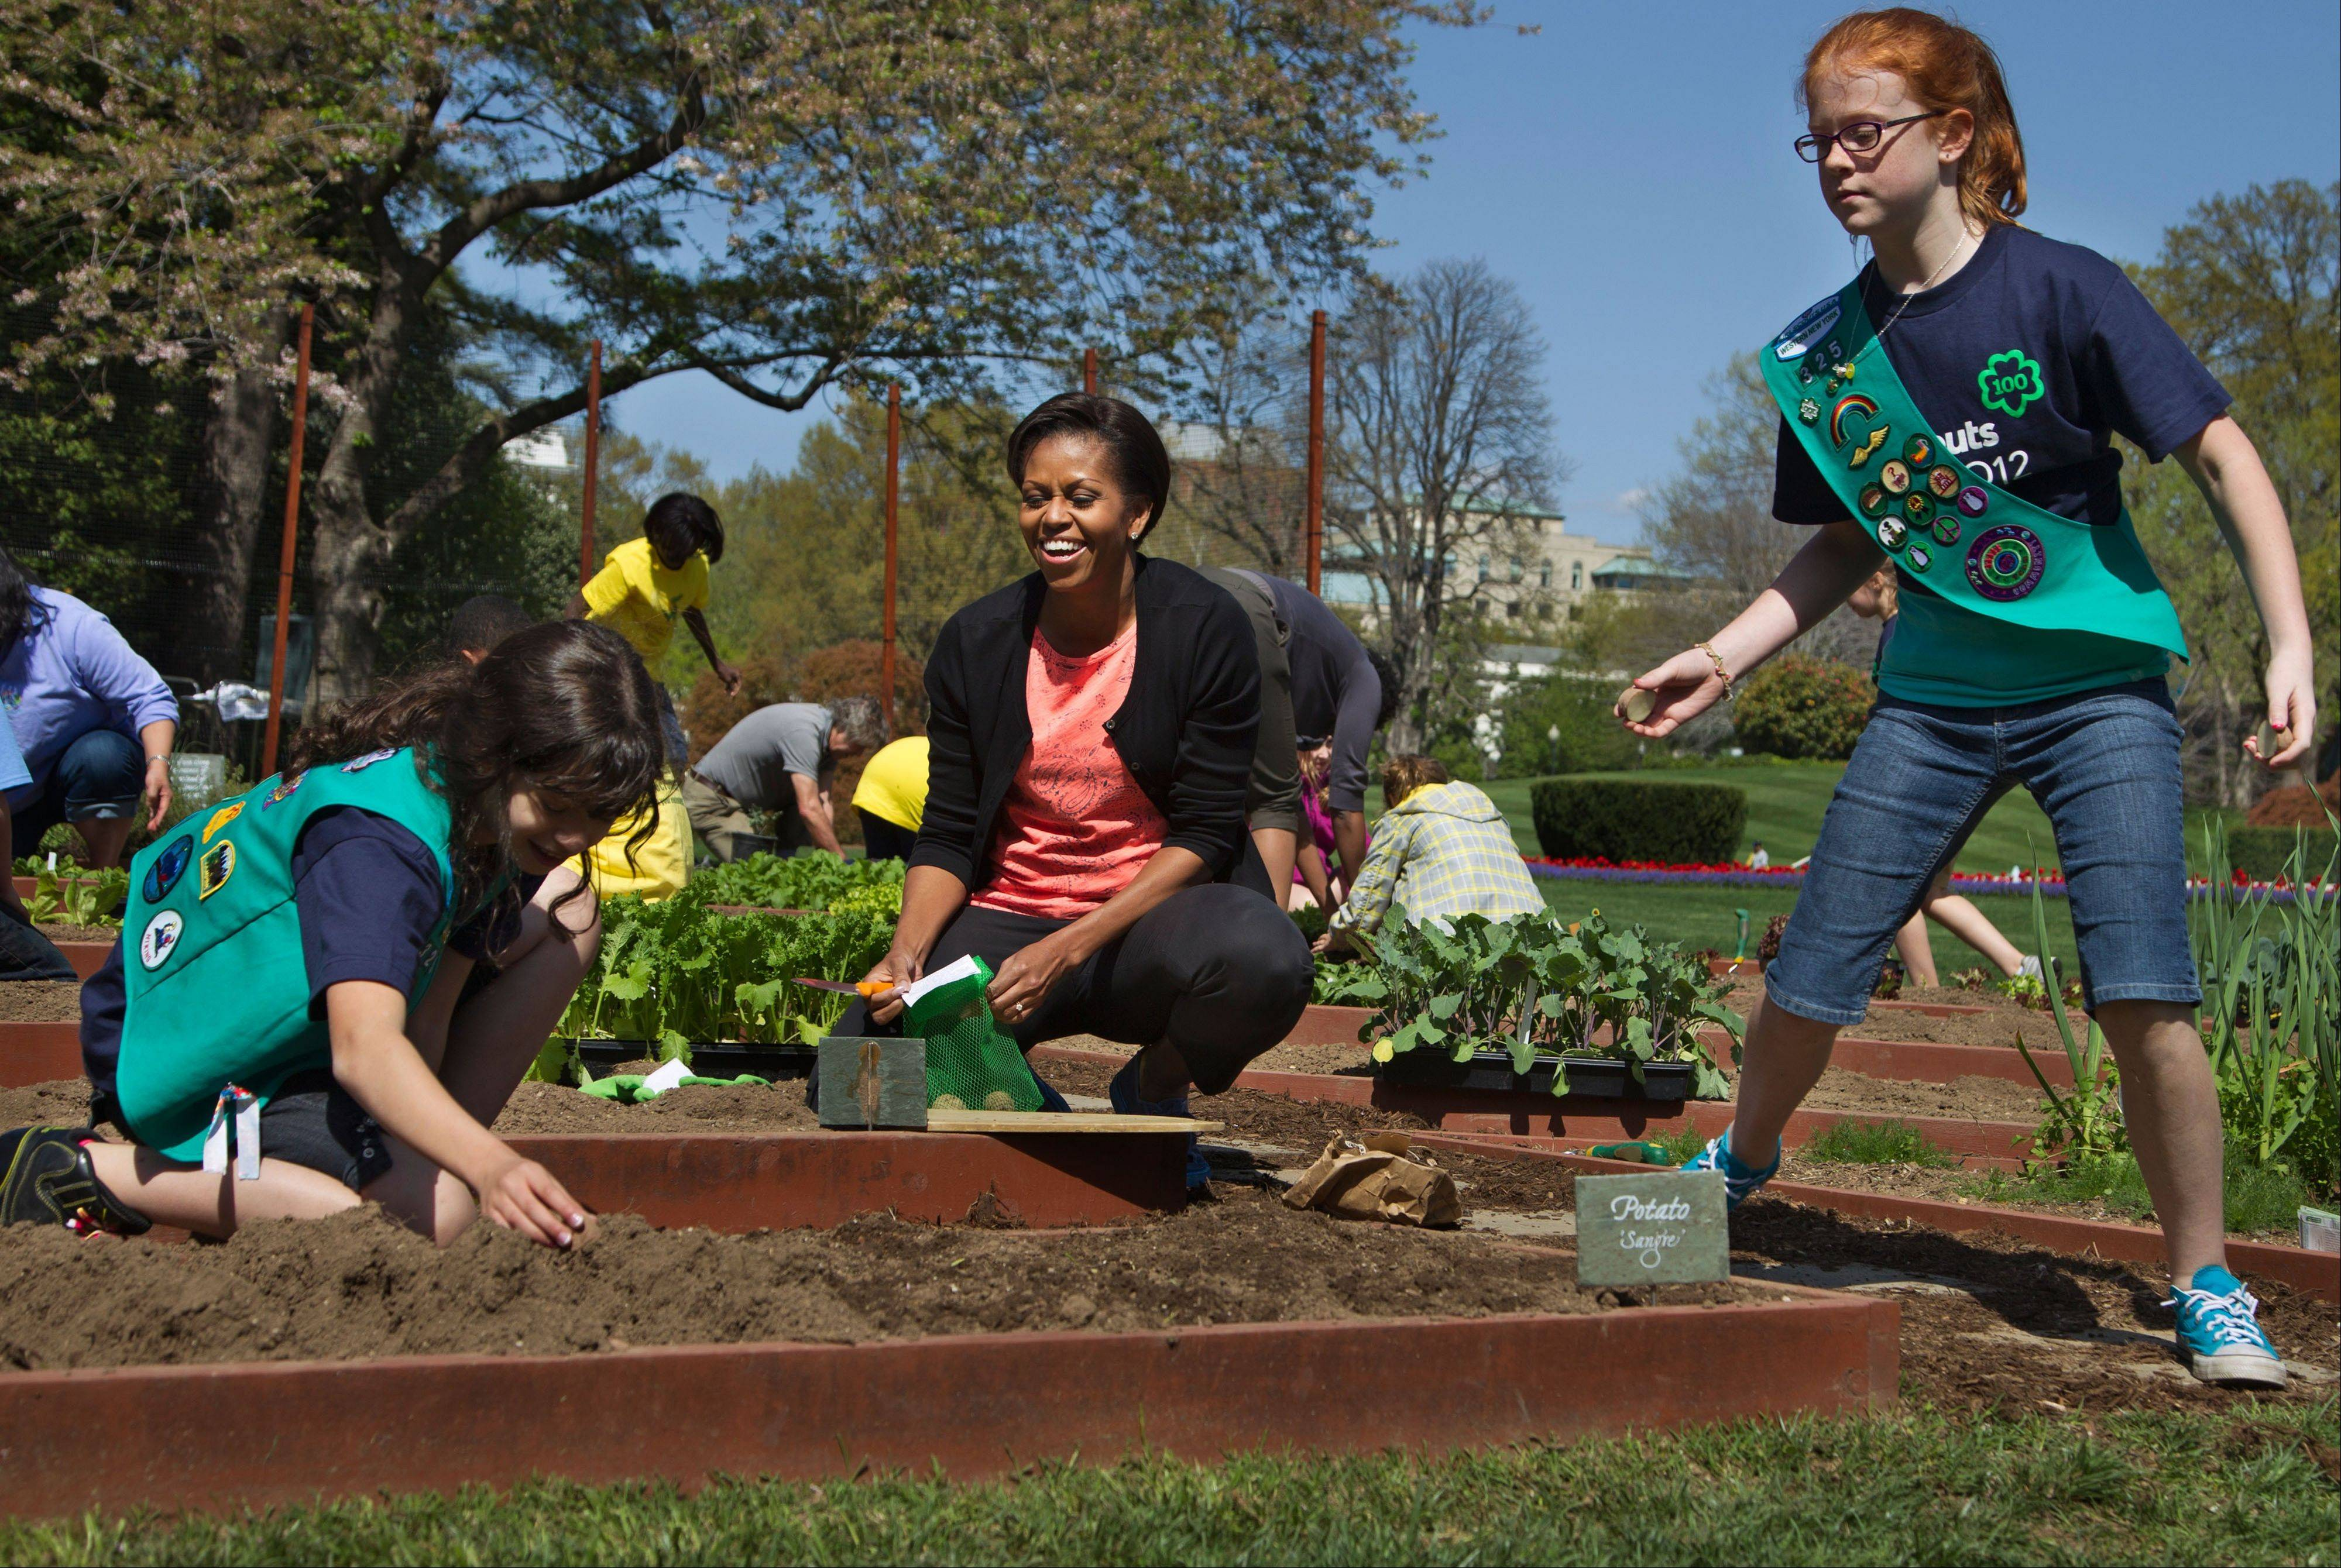 First lady Michelle Obama, center, laughs as she and Girl Scouts Gia Muto, left, and Emily Burnham, from Fairport, N.Y. plant potatoes during a spring planting of the White House kitchen garden at the White House in Washington. With an assist from Michelle Obama, the Girl Scouts of the USA is launching an unorthodox recruitment campaign aimed at reversing a long-running decline in participation by girls and adult volunteers.